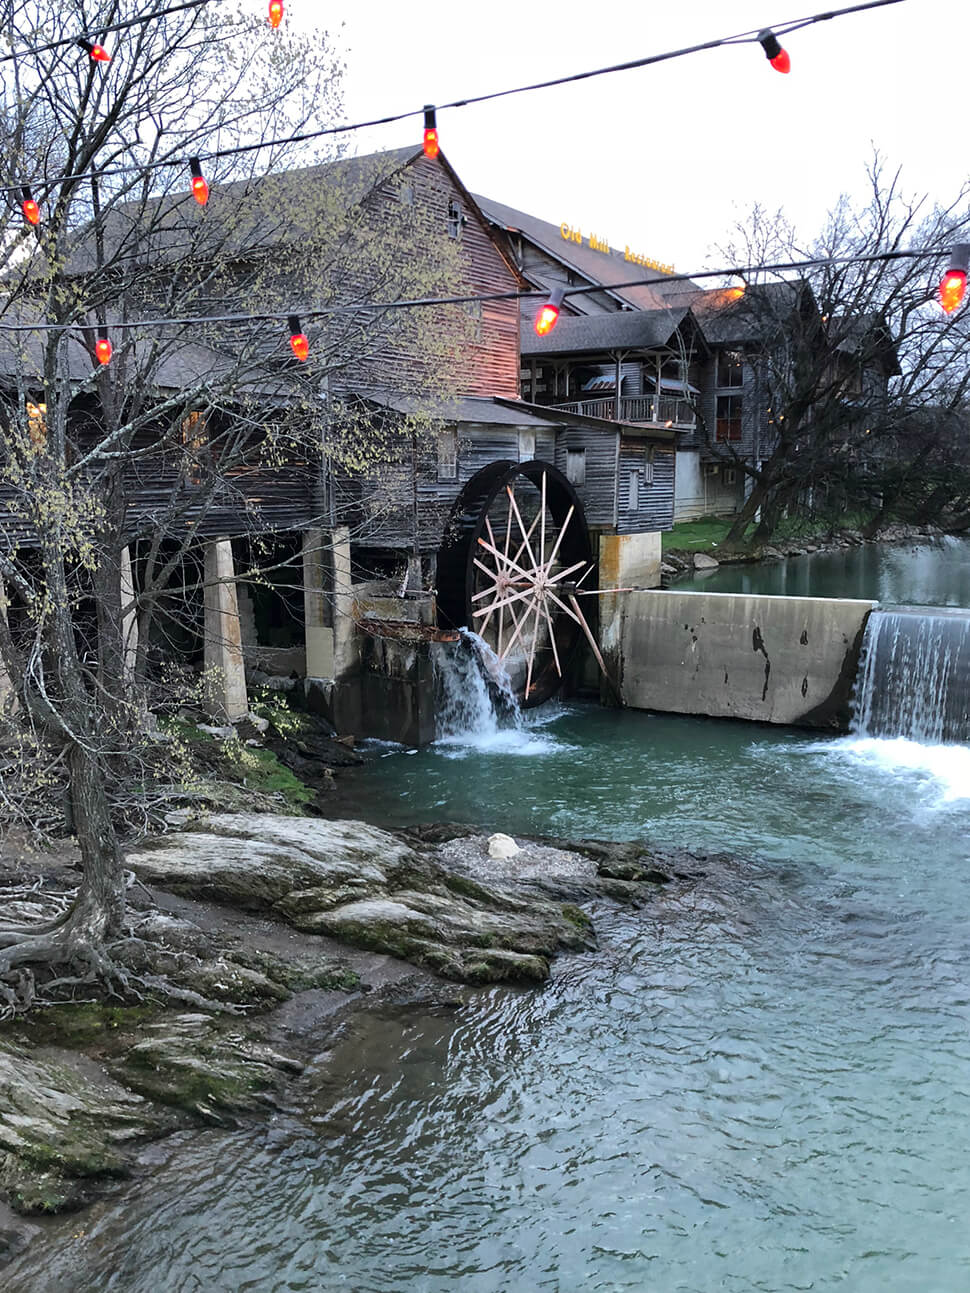 The old water wheel in the river outside the Old Mill Restaurant in Pigeon Forge.